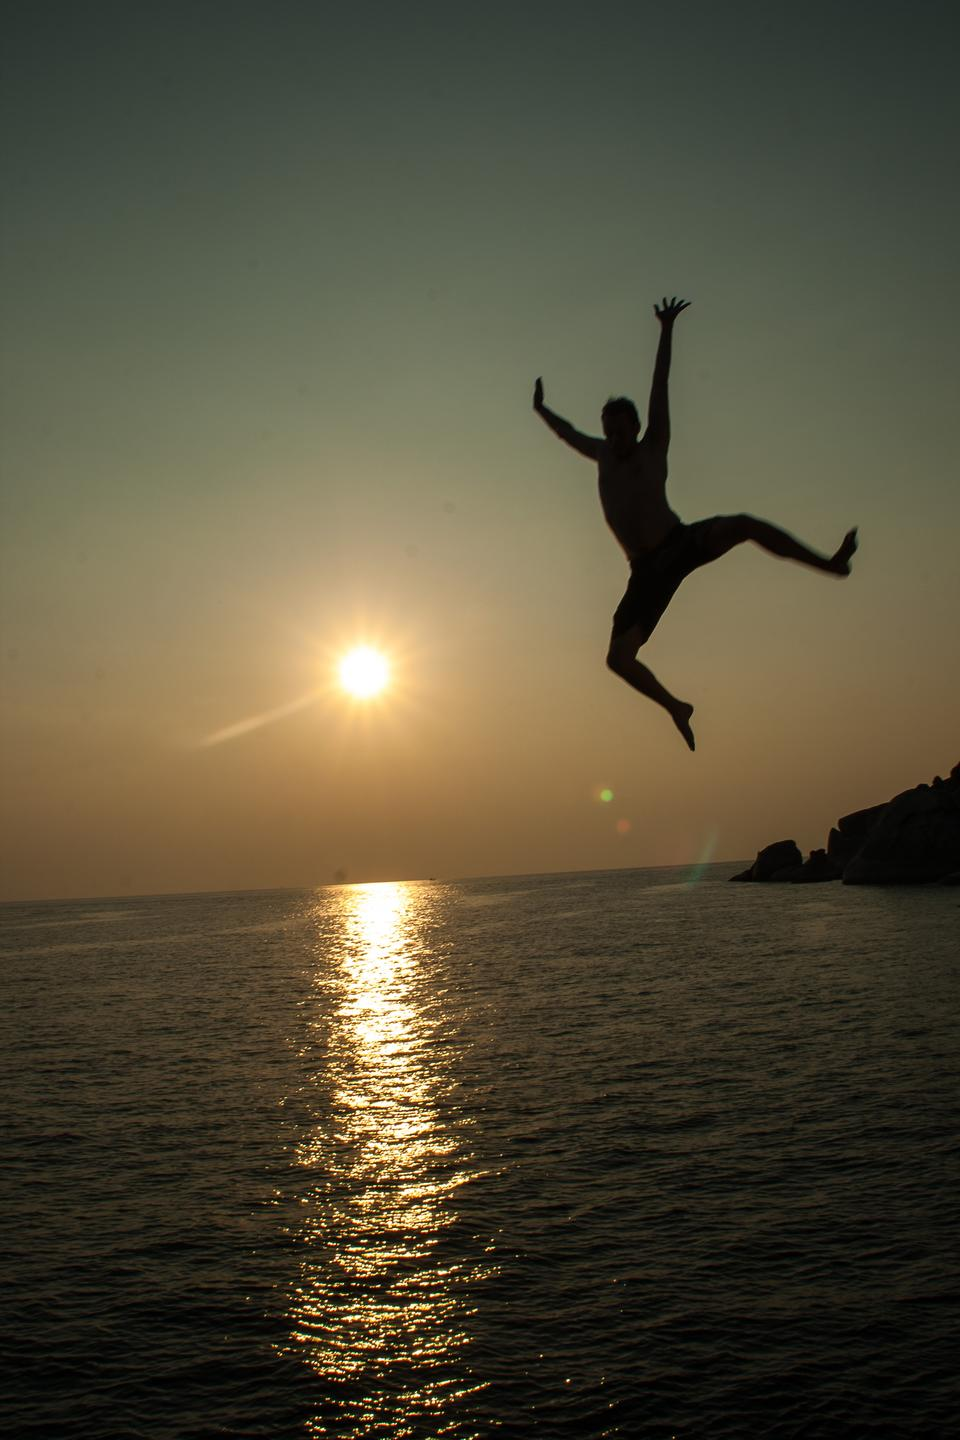 a silhouette of a man jumping from a boat shortly before the sun sets